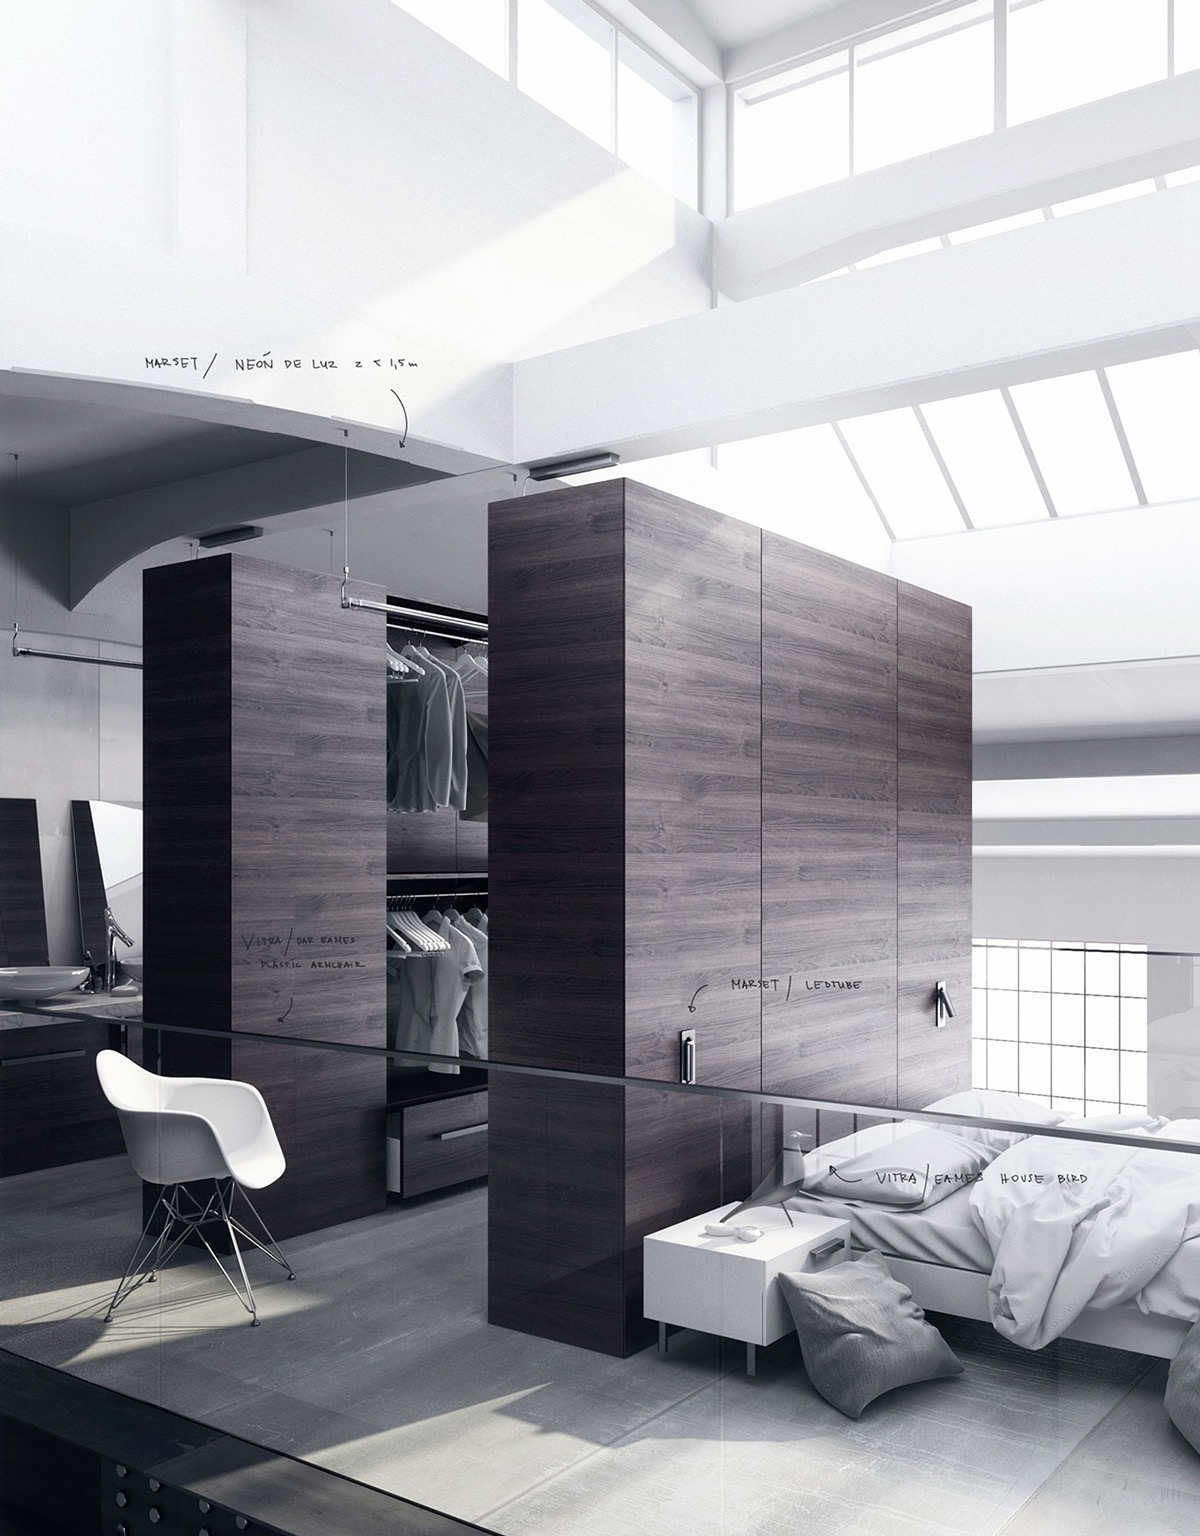 Wardrobe Dividing Wall - 20 beautiful examples of bedrooms with attached wardrobes